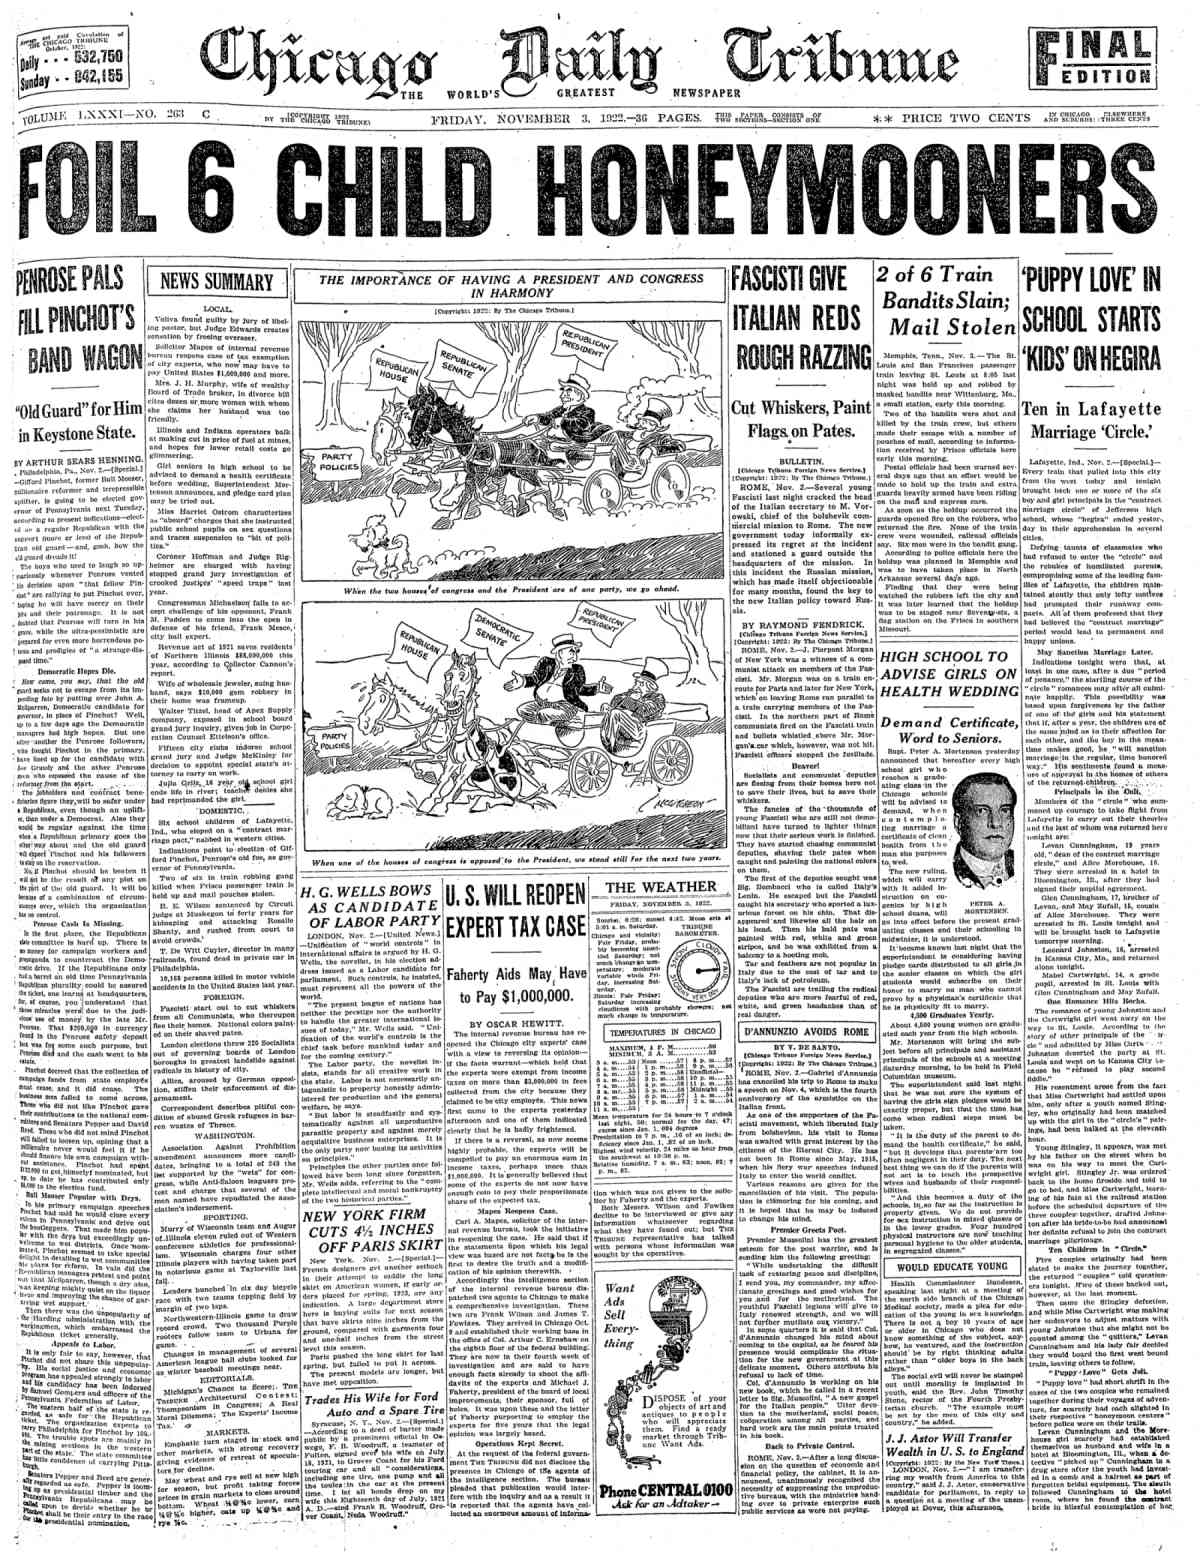 File:Chicago Daily Tribune 11 03 1922 png - Wikimedia Commons